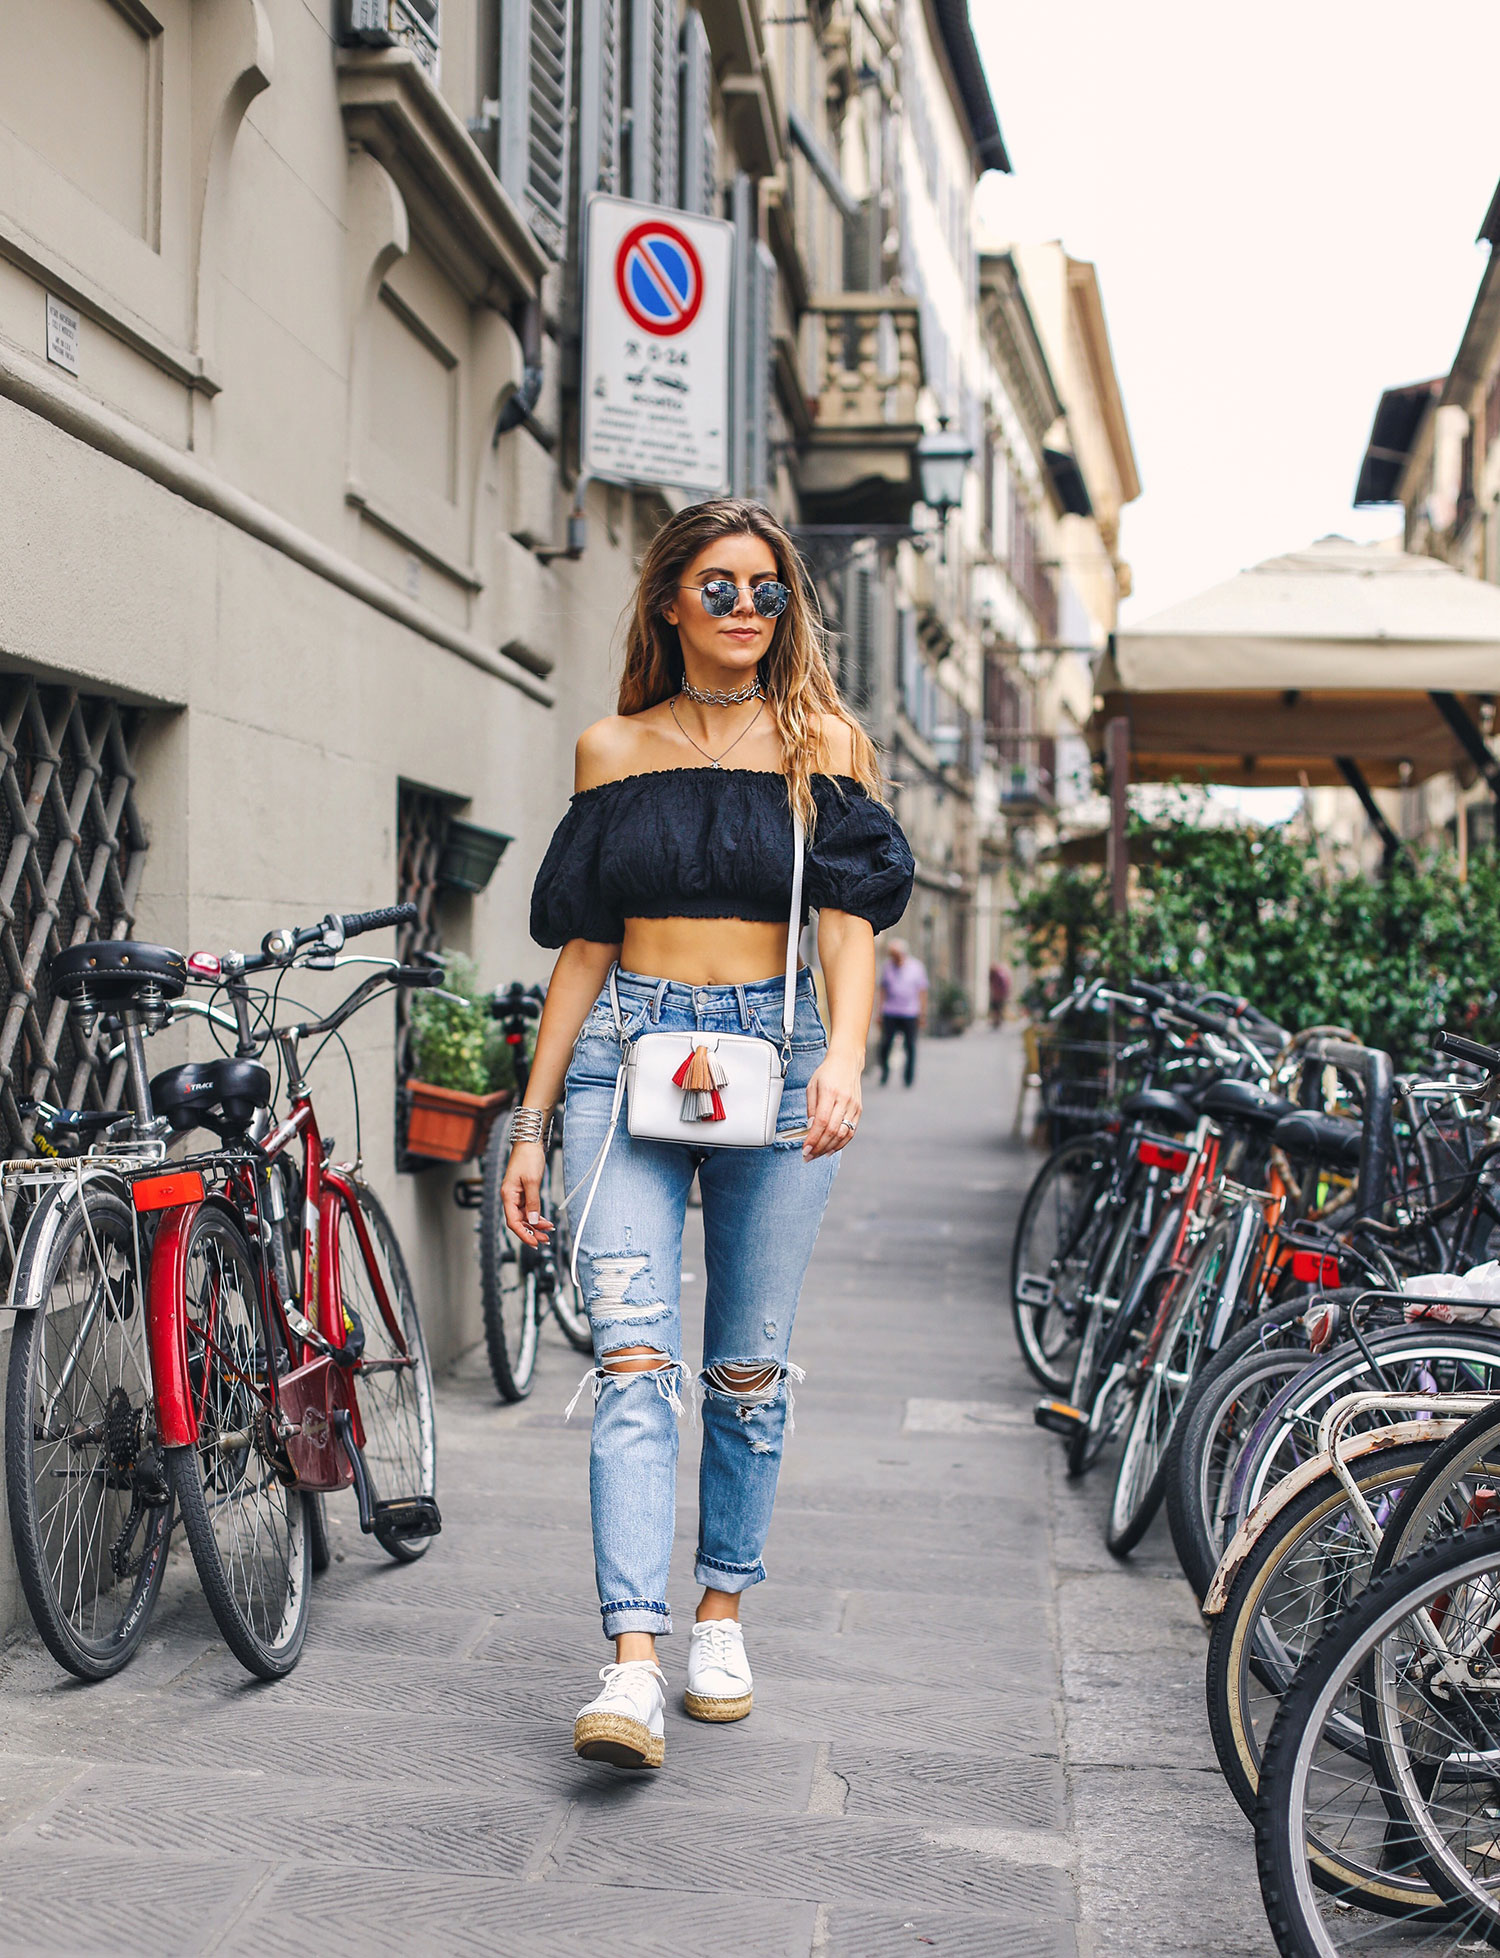 Fashion and lifestyle blogger Adelina Perrin of The Charming Olive wearing Urban Outfitters top, Grlfrnd denim and Rebecca Minkoff bag